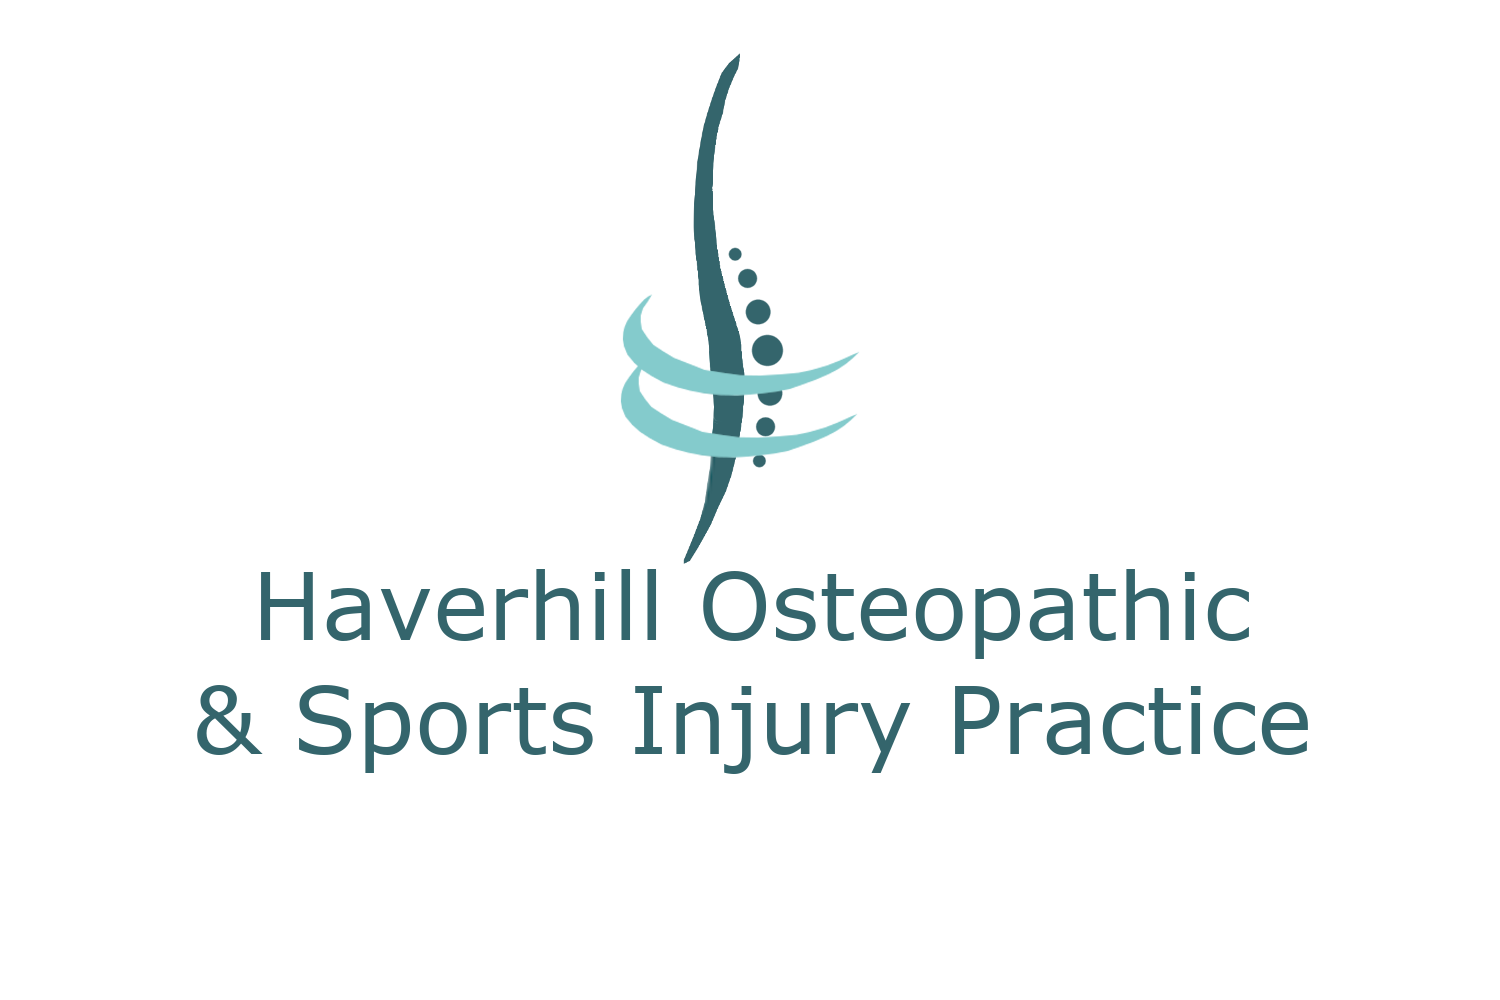 Haverhill Osteopathic and Sports Injury Practice